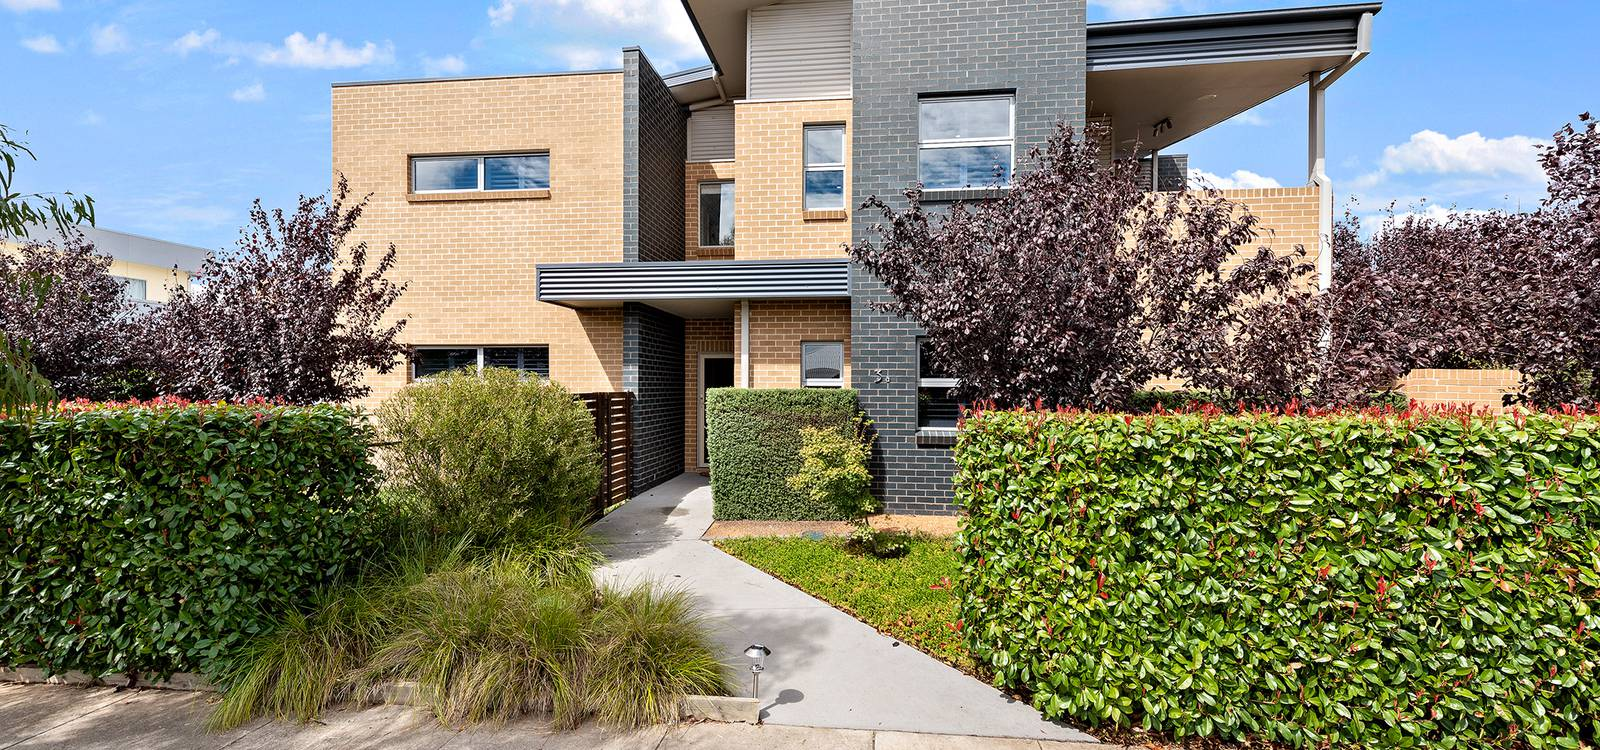 3A Deeble Street FORDE, ACT 2914 - photo 1